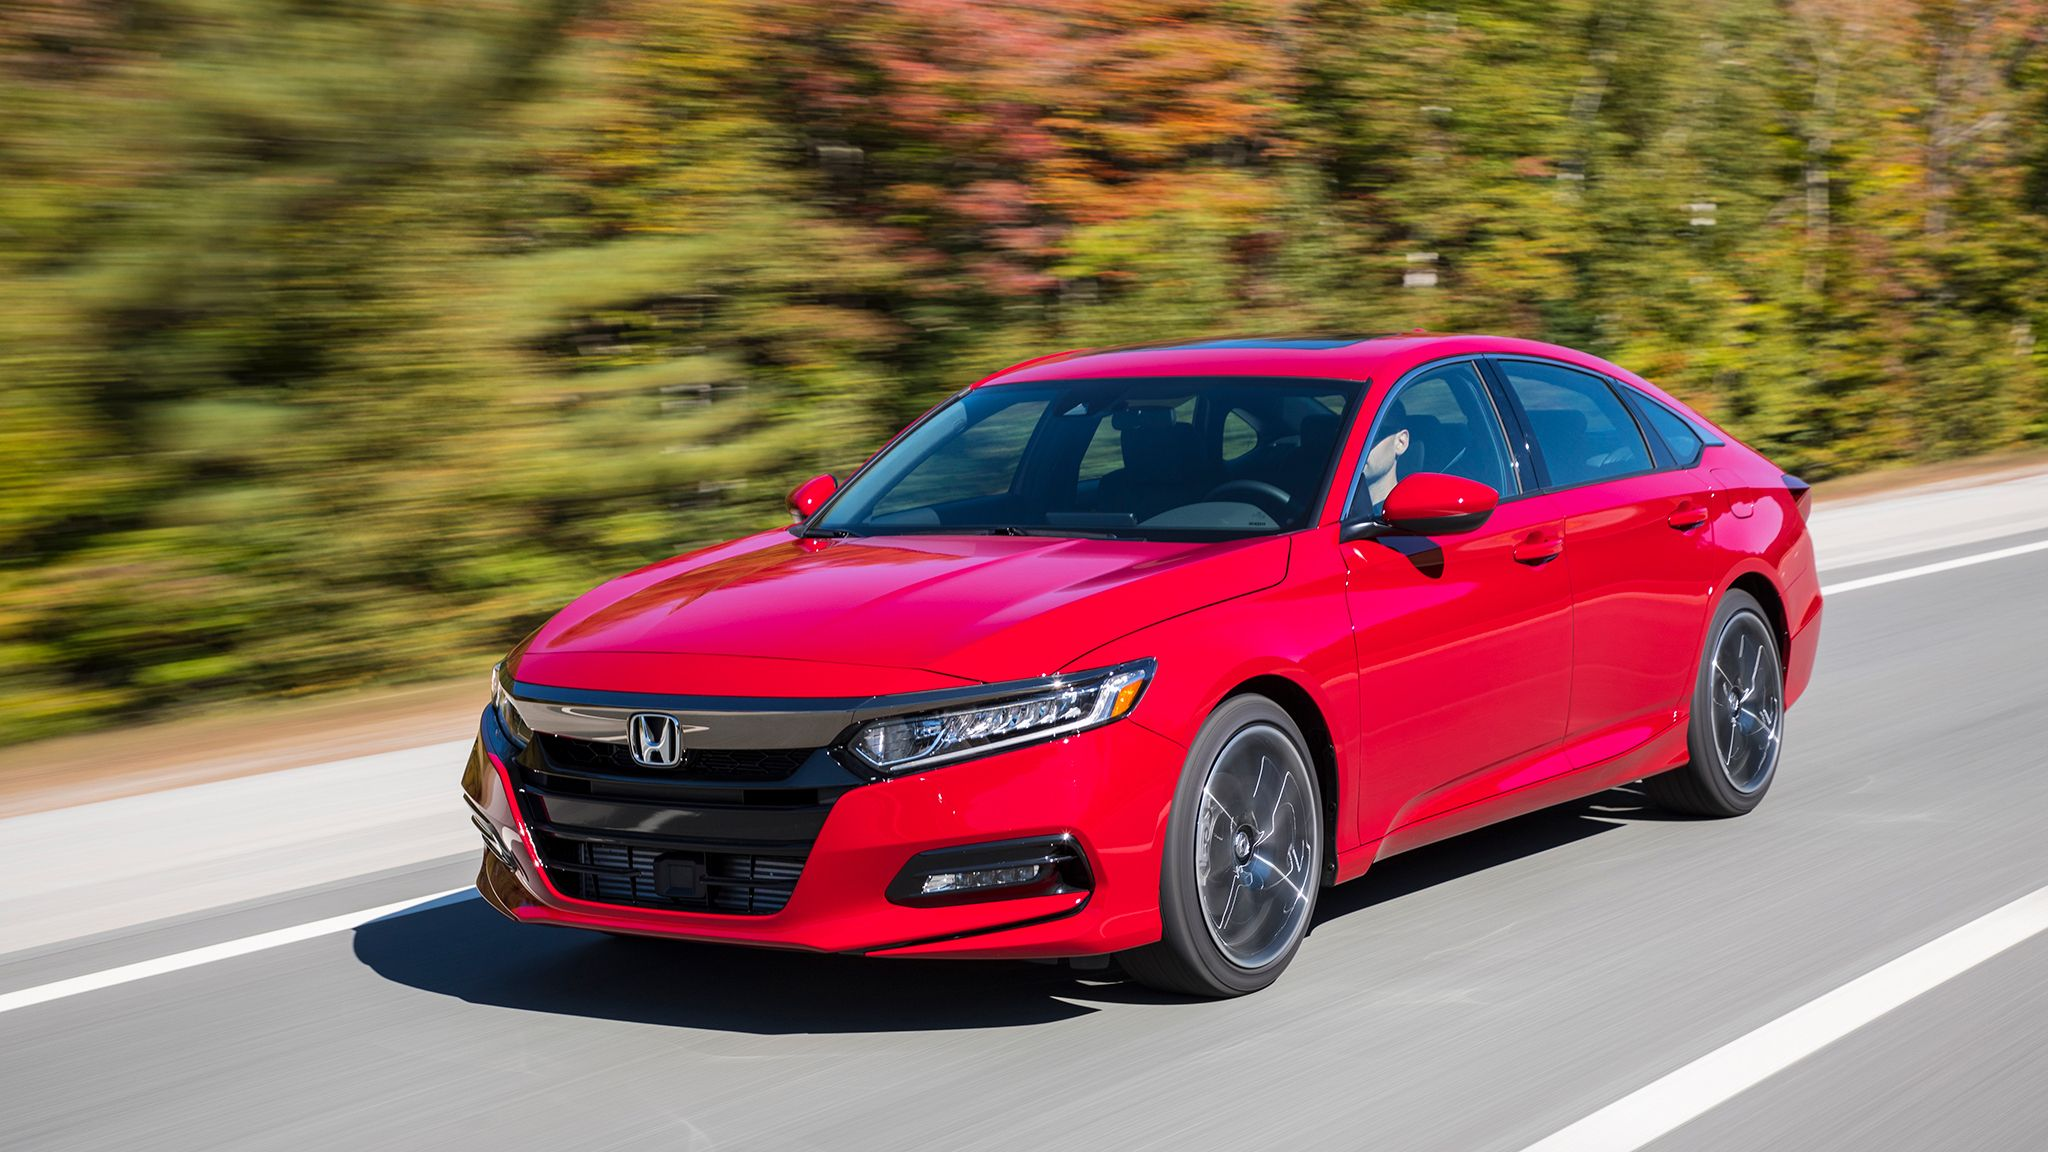 New Honda Accord 2020 Release Date, Price, Redesign